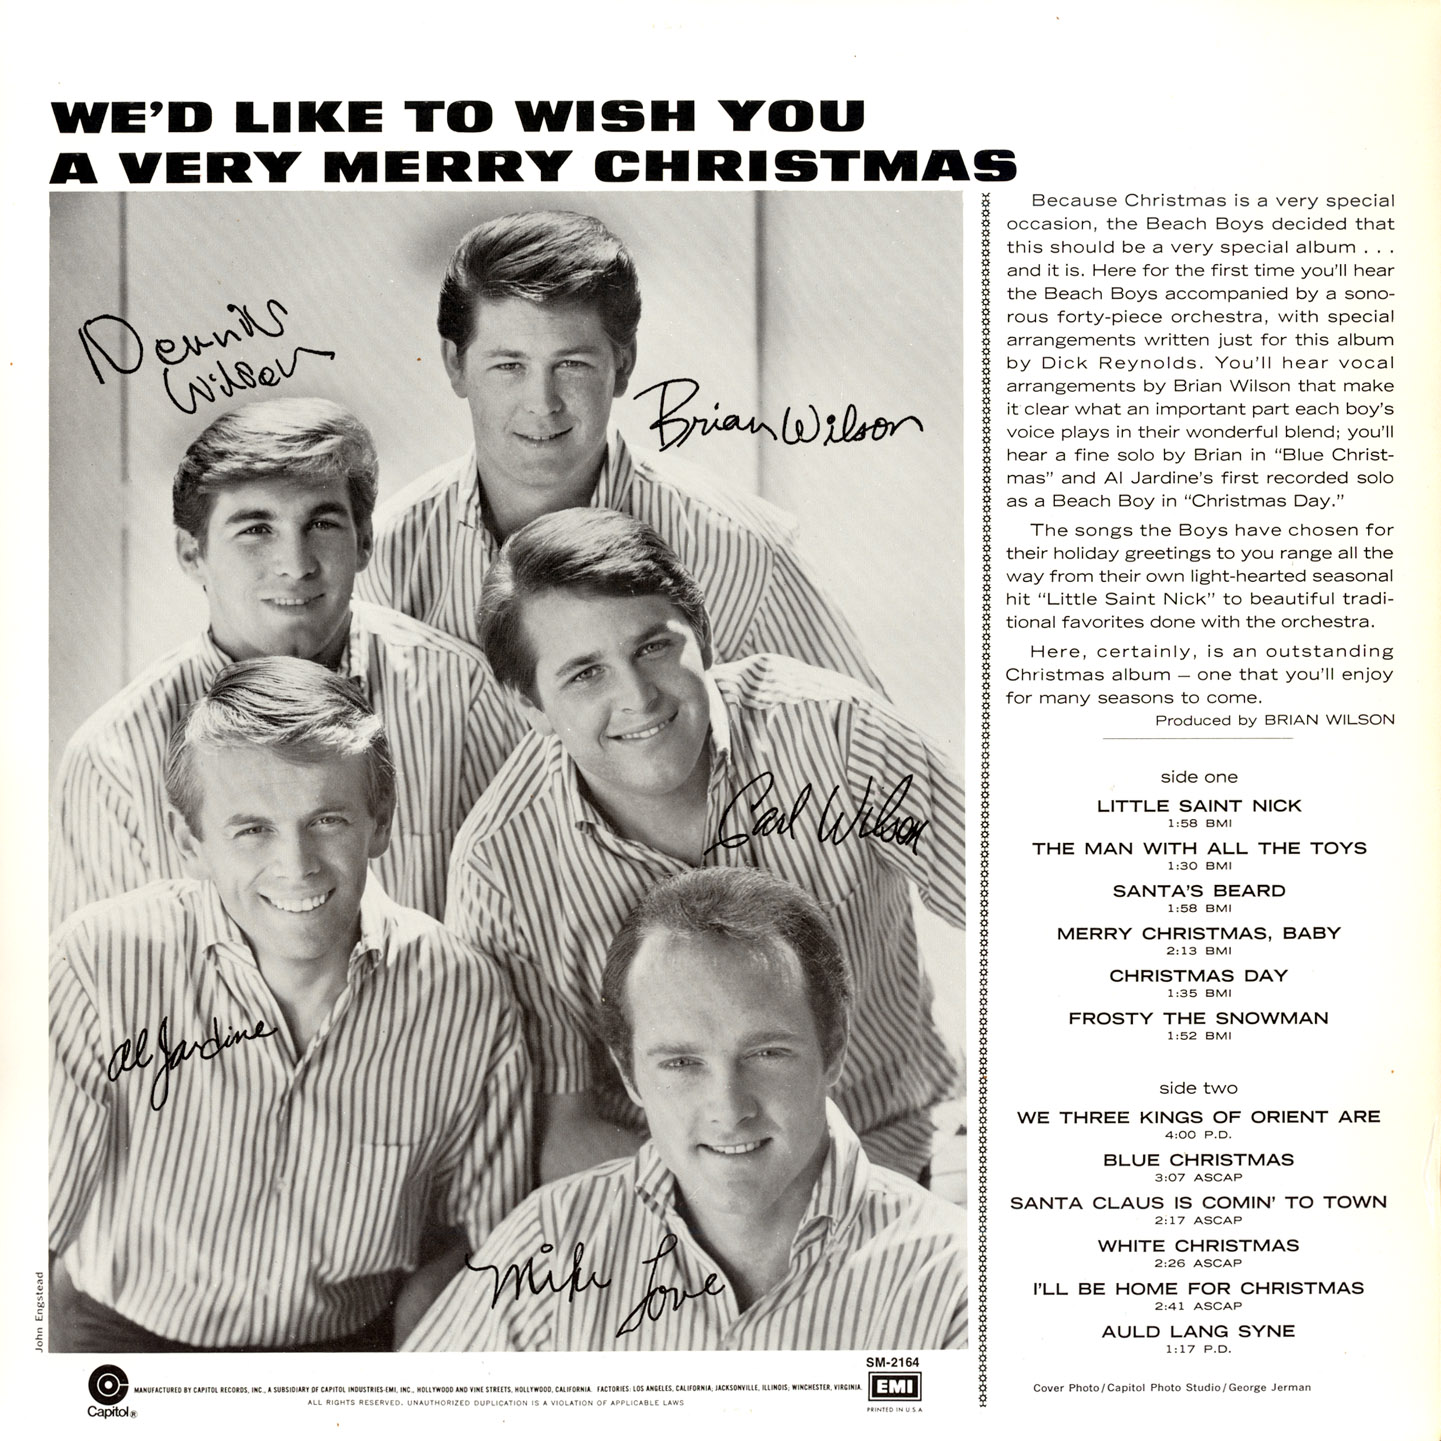 beach boys christmas album 1964 - 69 Boyz Christmas Song